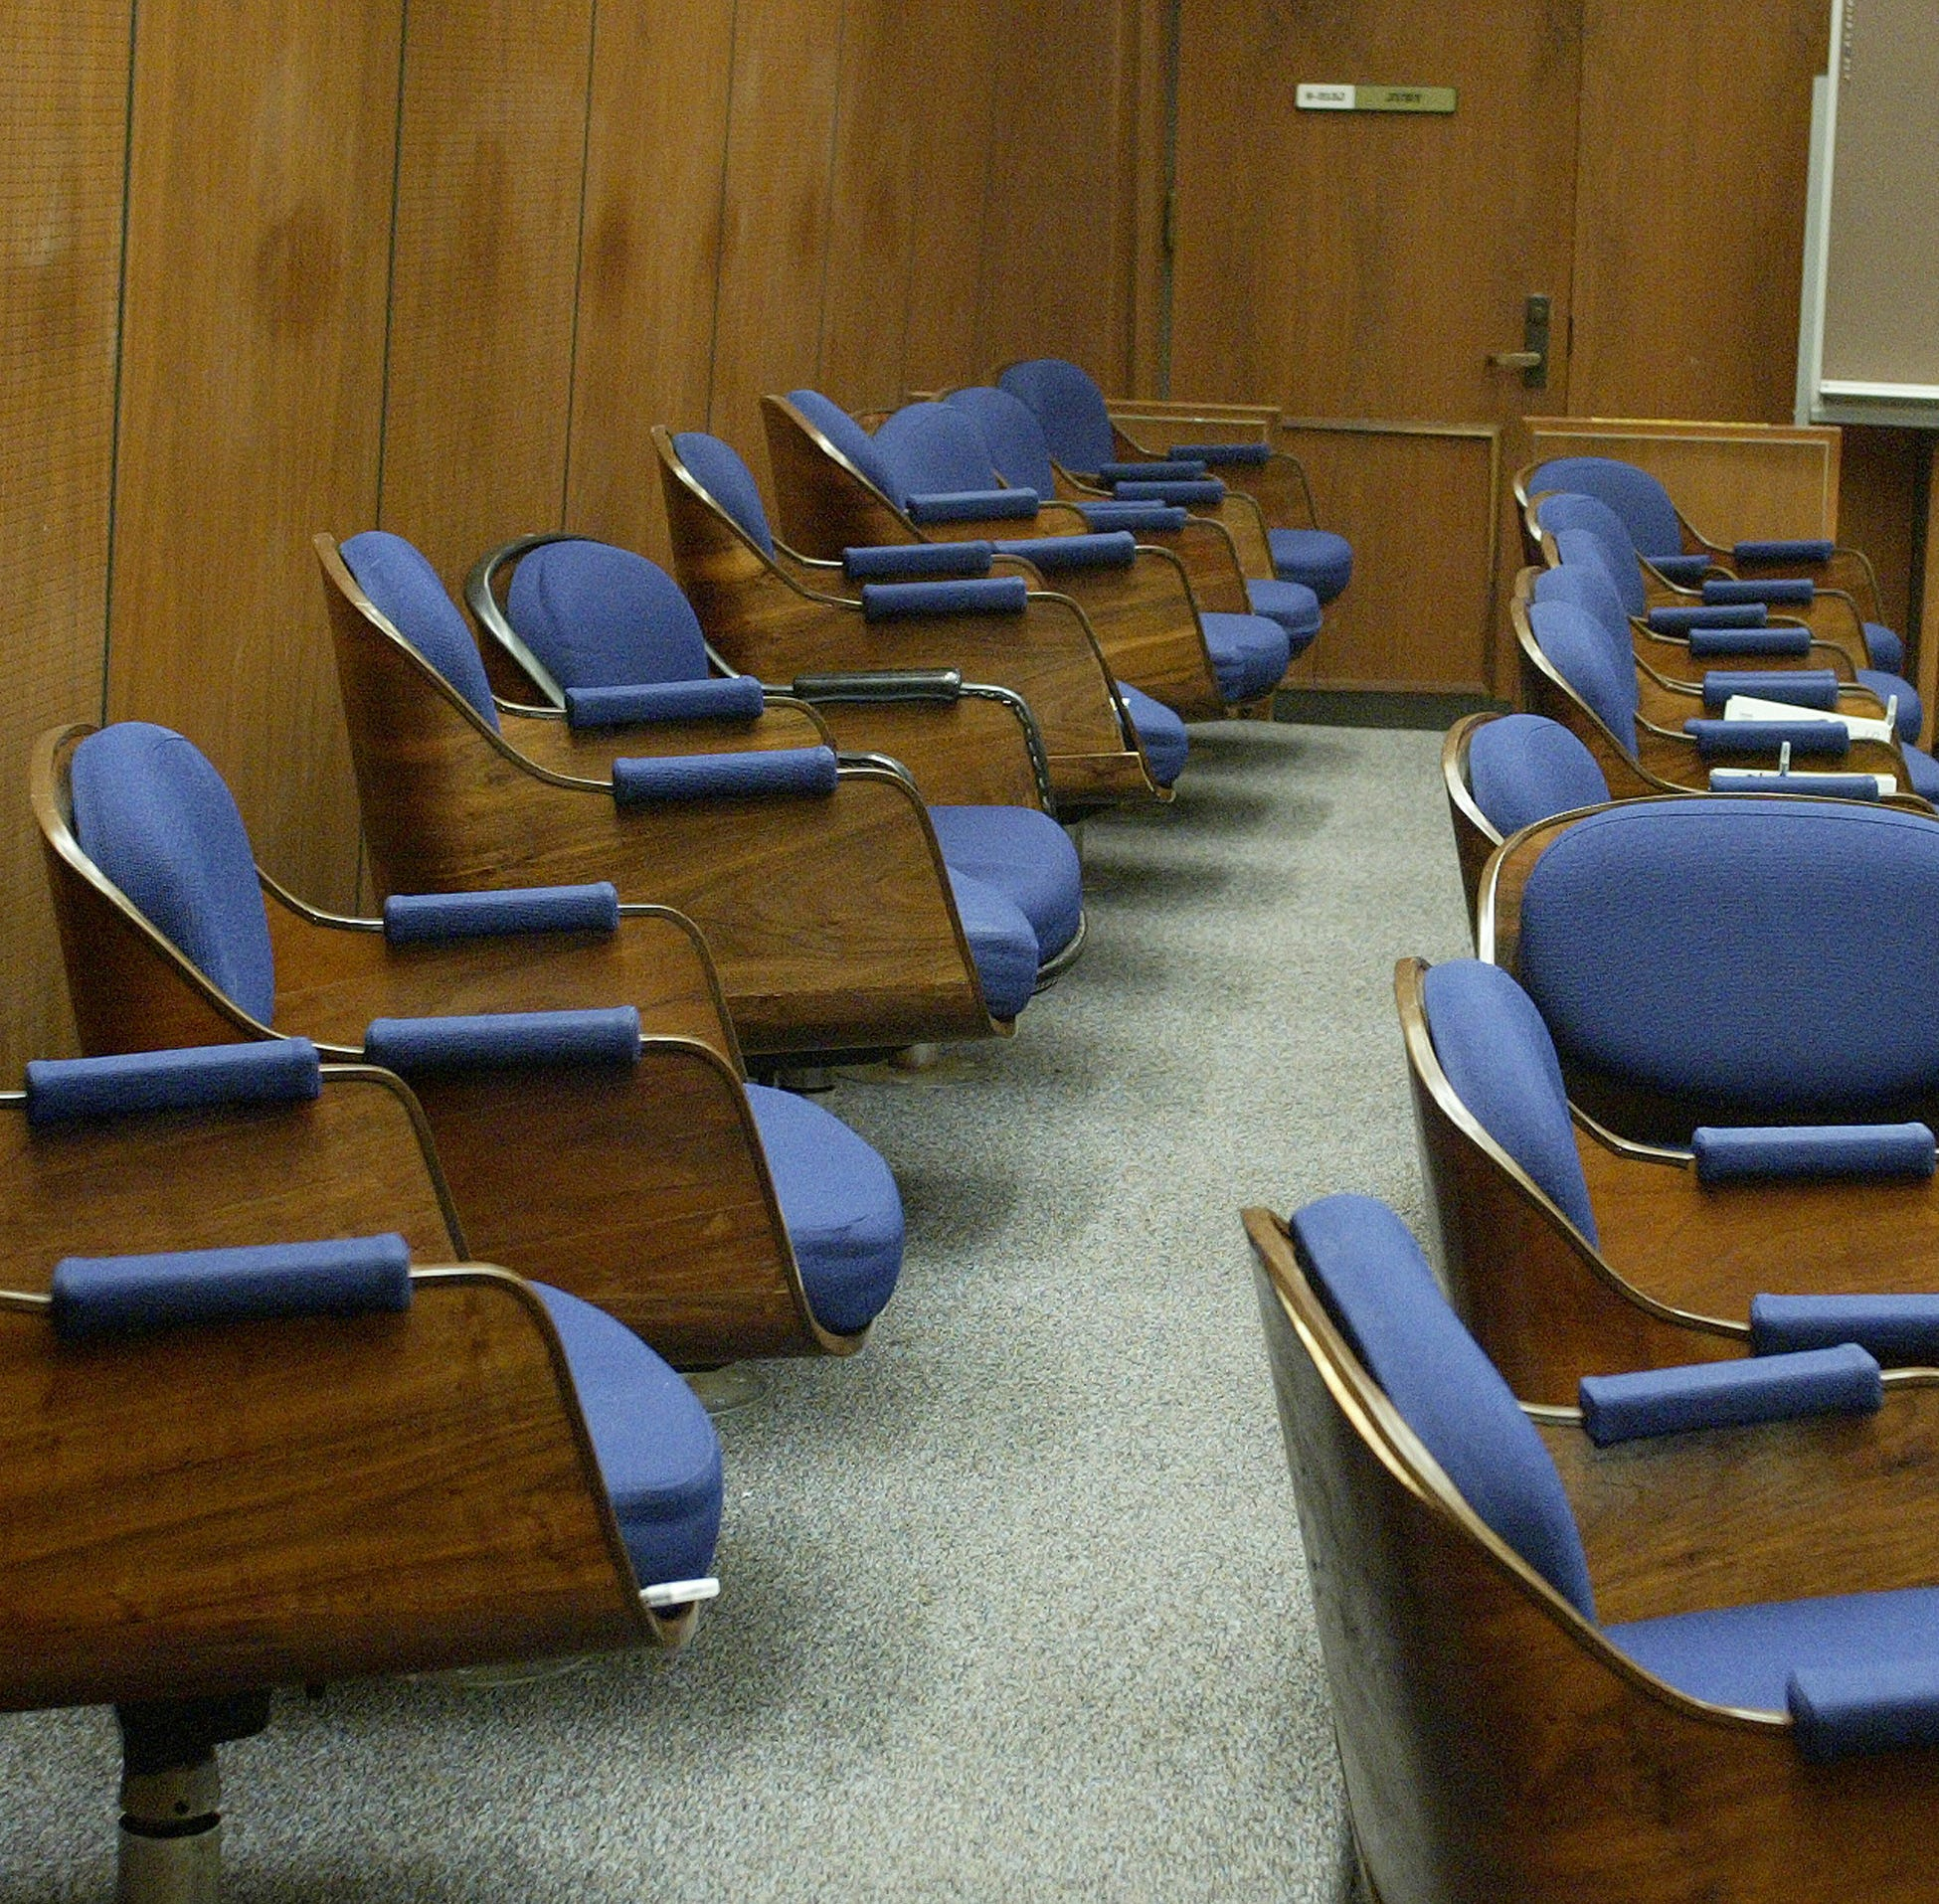 Seats in an empty jury box. (Photo by Fred Prouser-Pool/Getty Images)